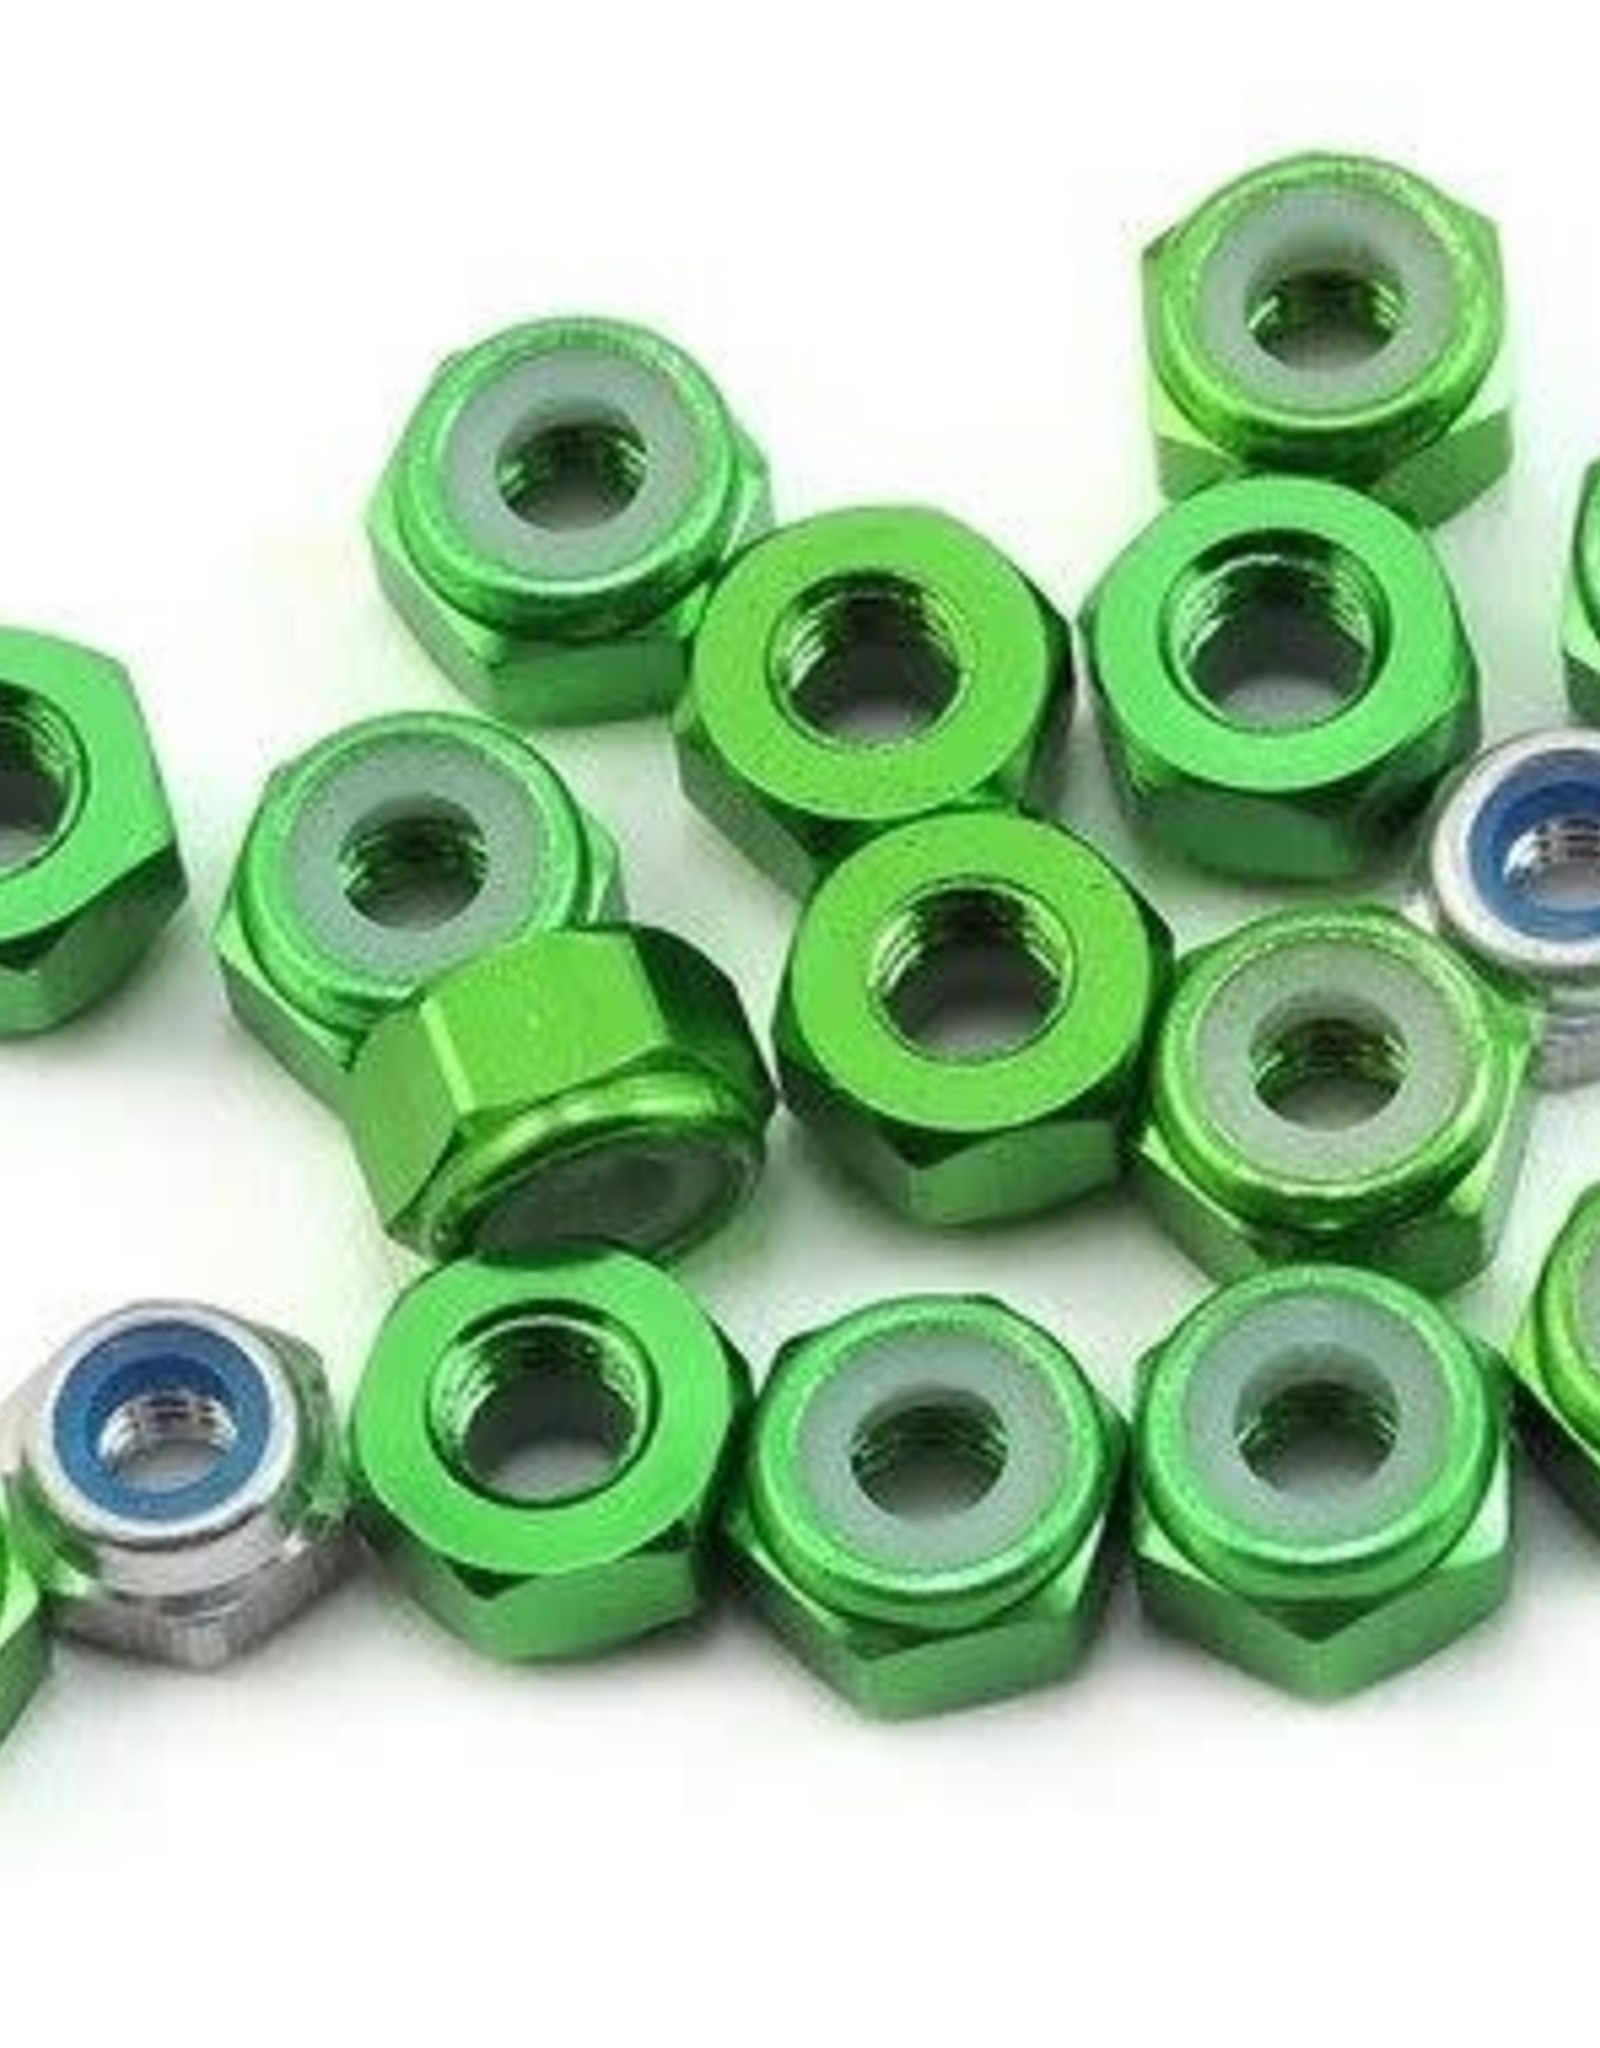 175RC 175RC aluminum nut kit TLR 22 4